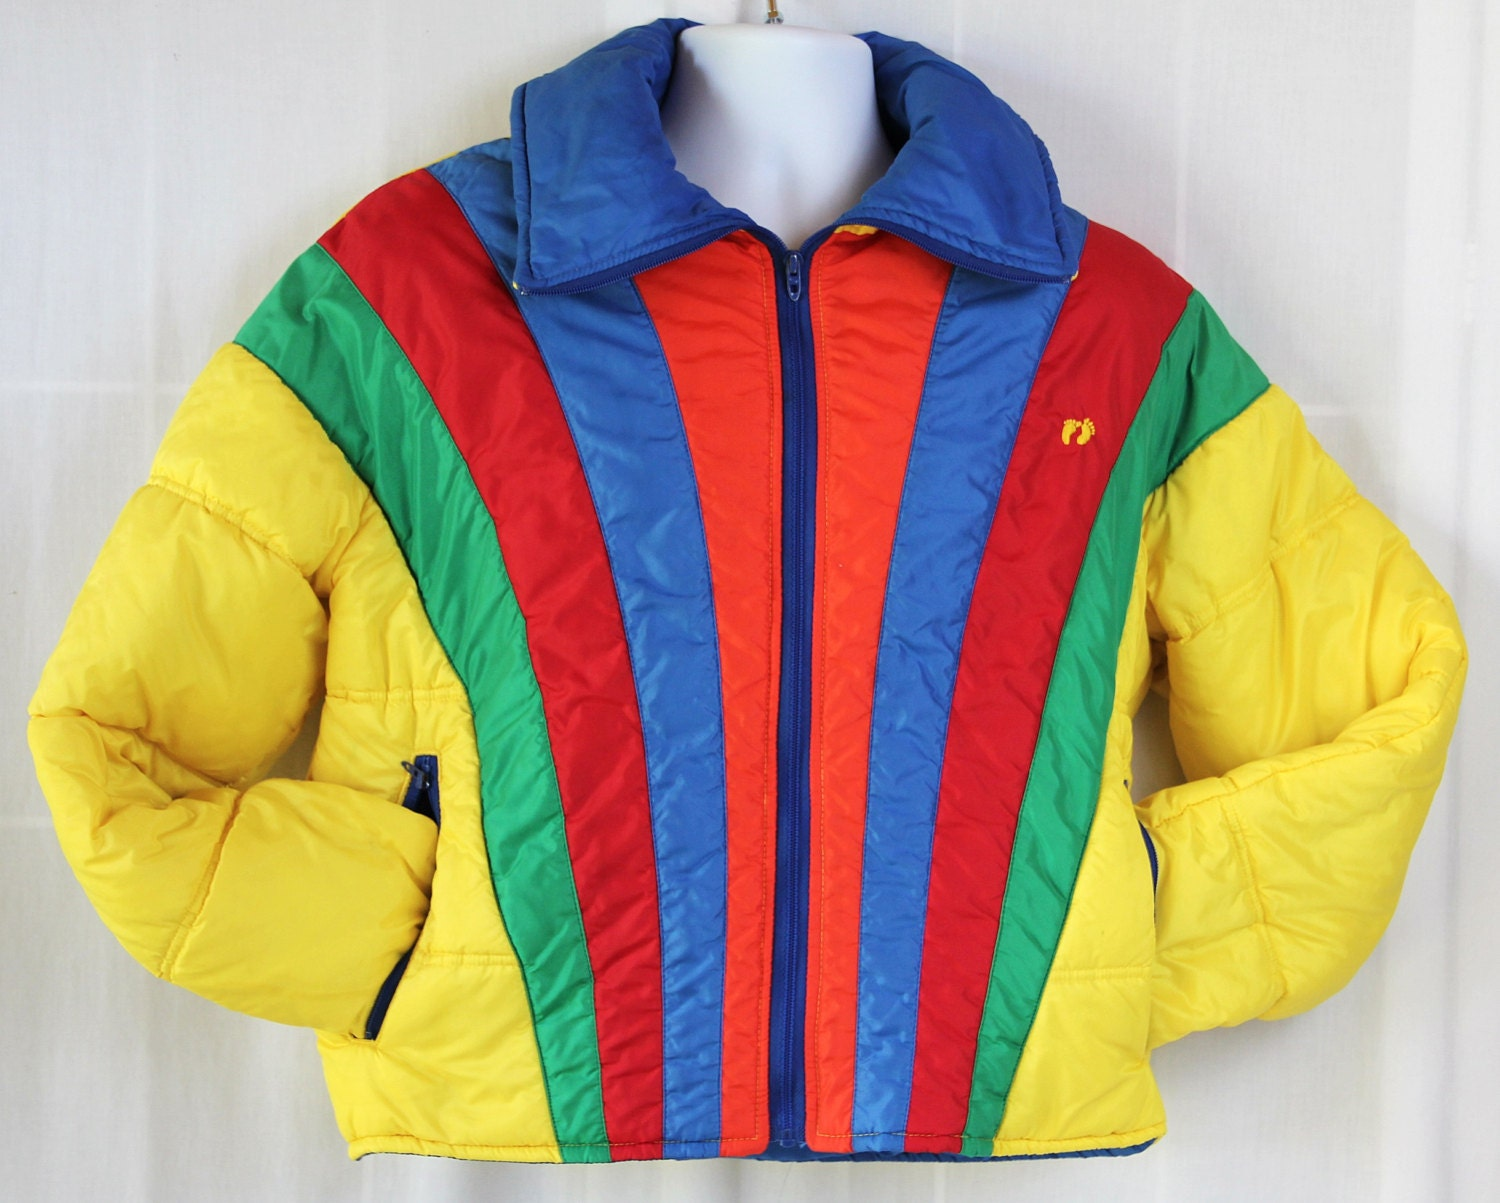 70s Jacket / Rainbow / Hang Ten / Ski Jacket / Bubble Jacket / Fall Fashion / Unisex - PetticoatsPlus